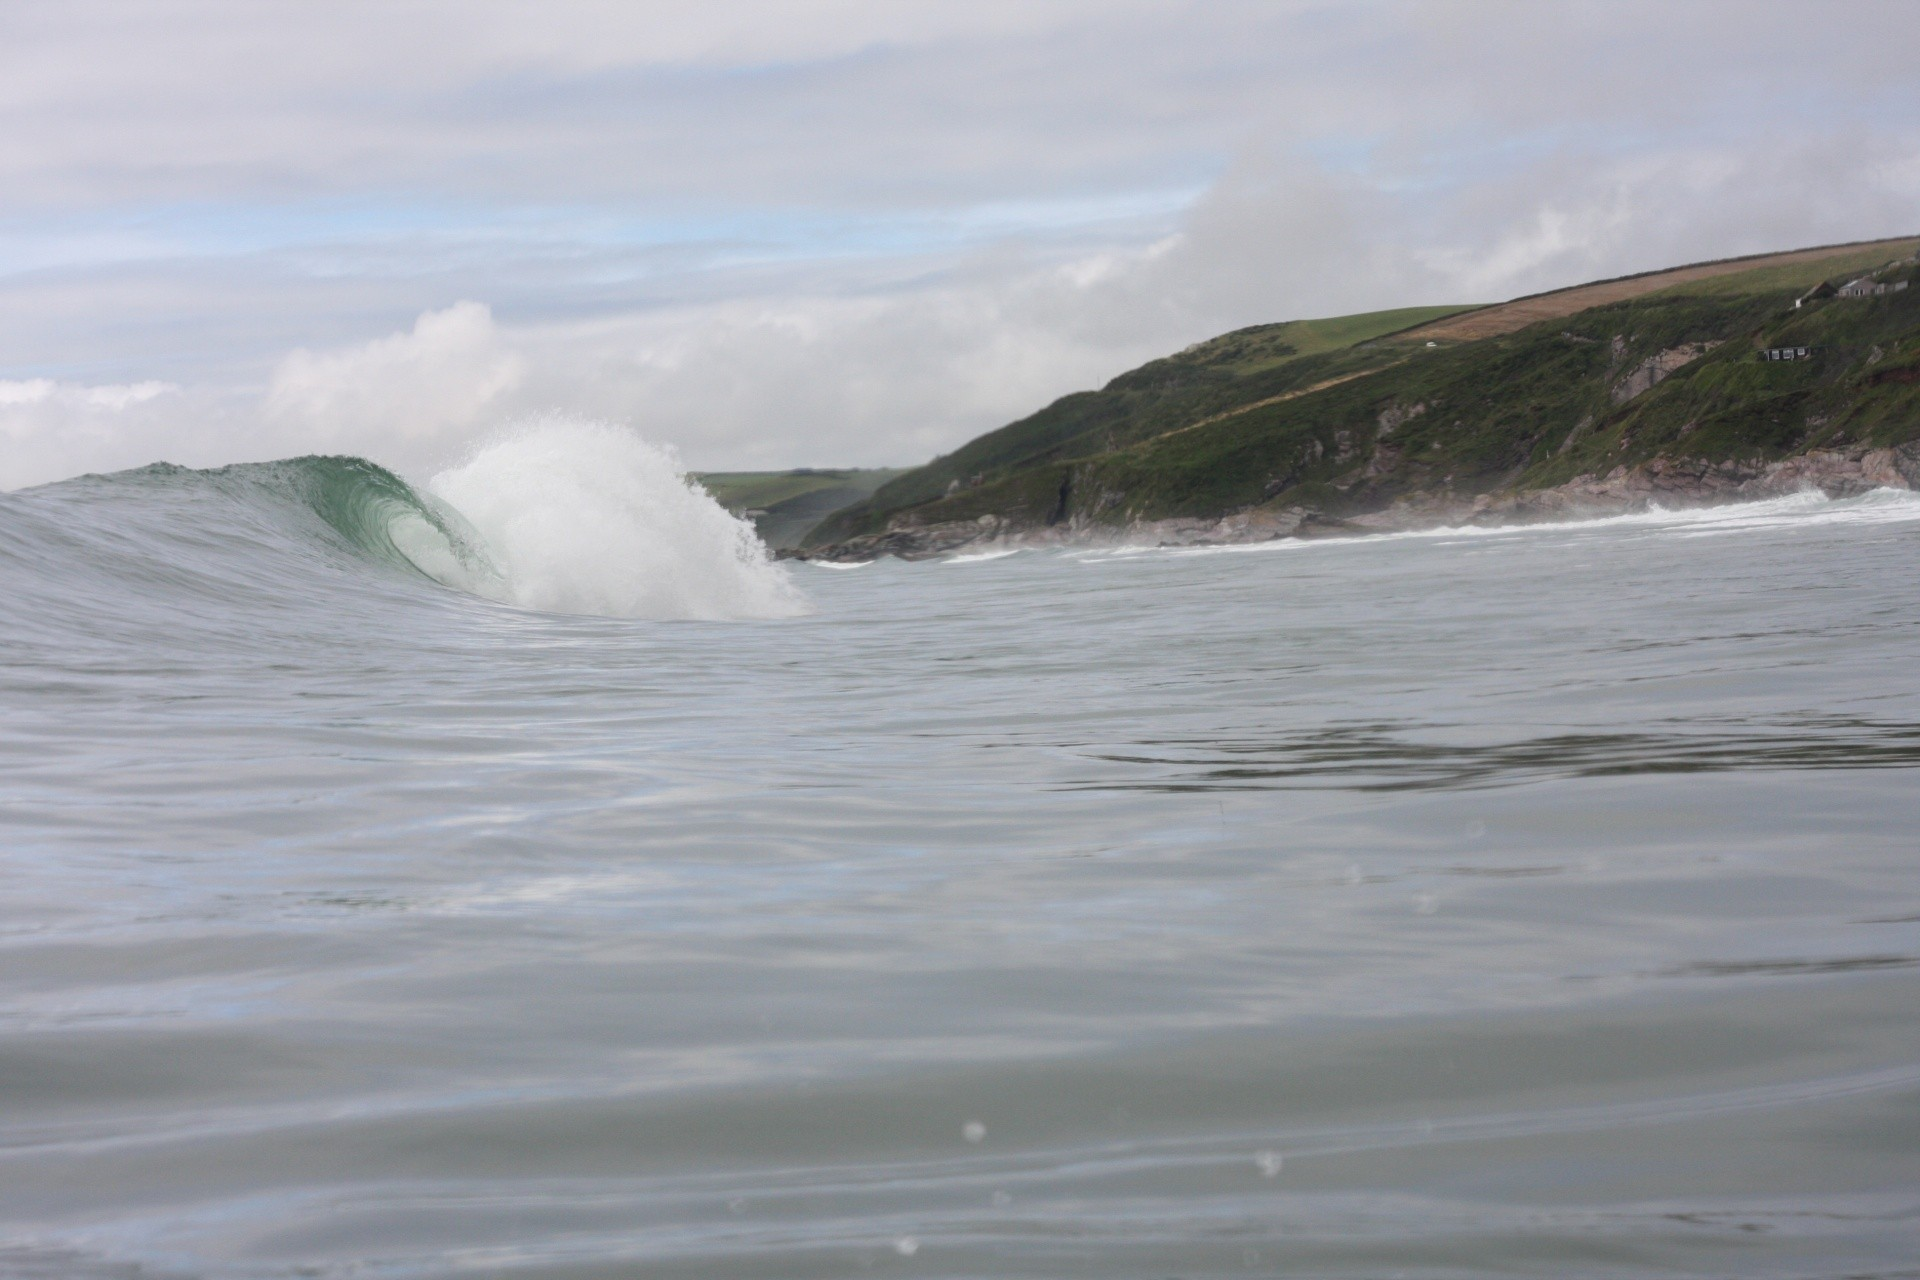 Central Photography's photo of Whitsand Bay